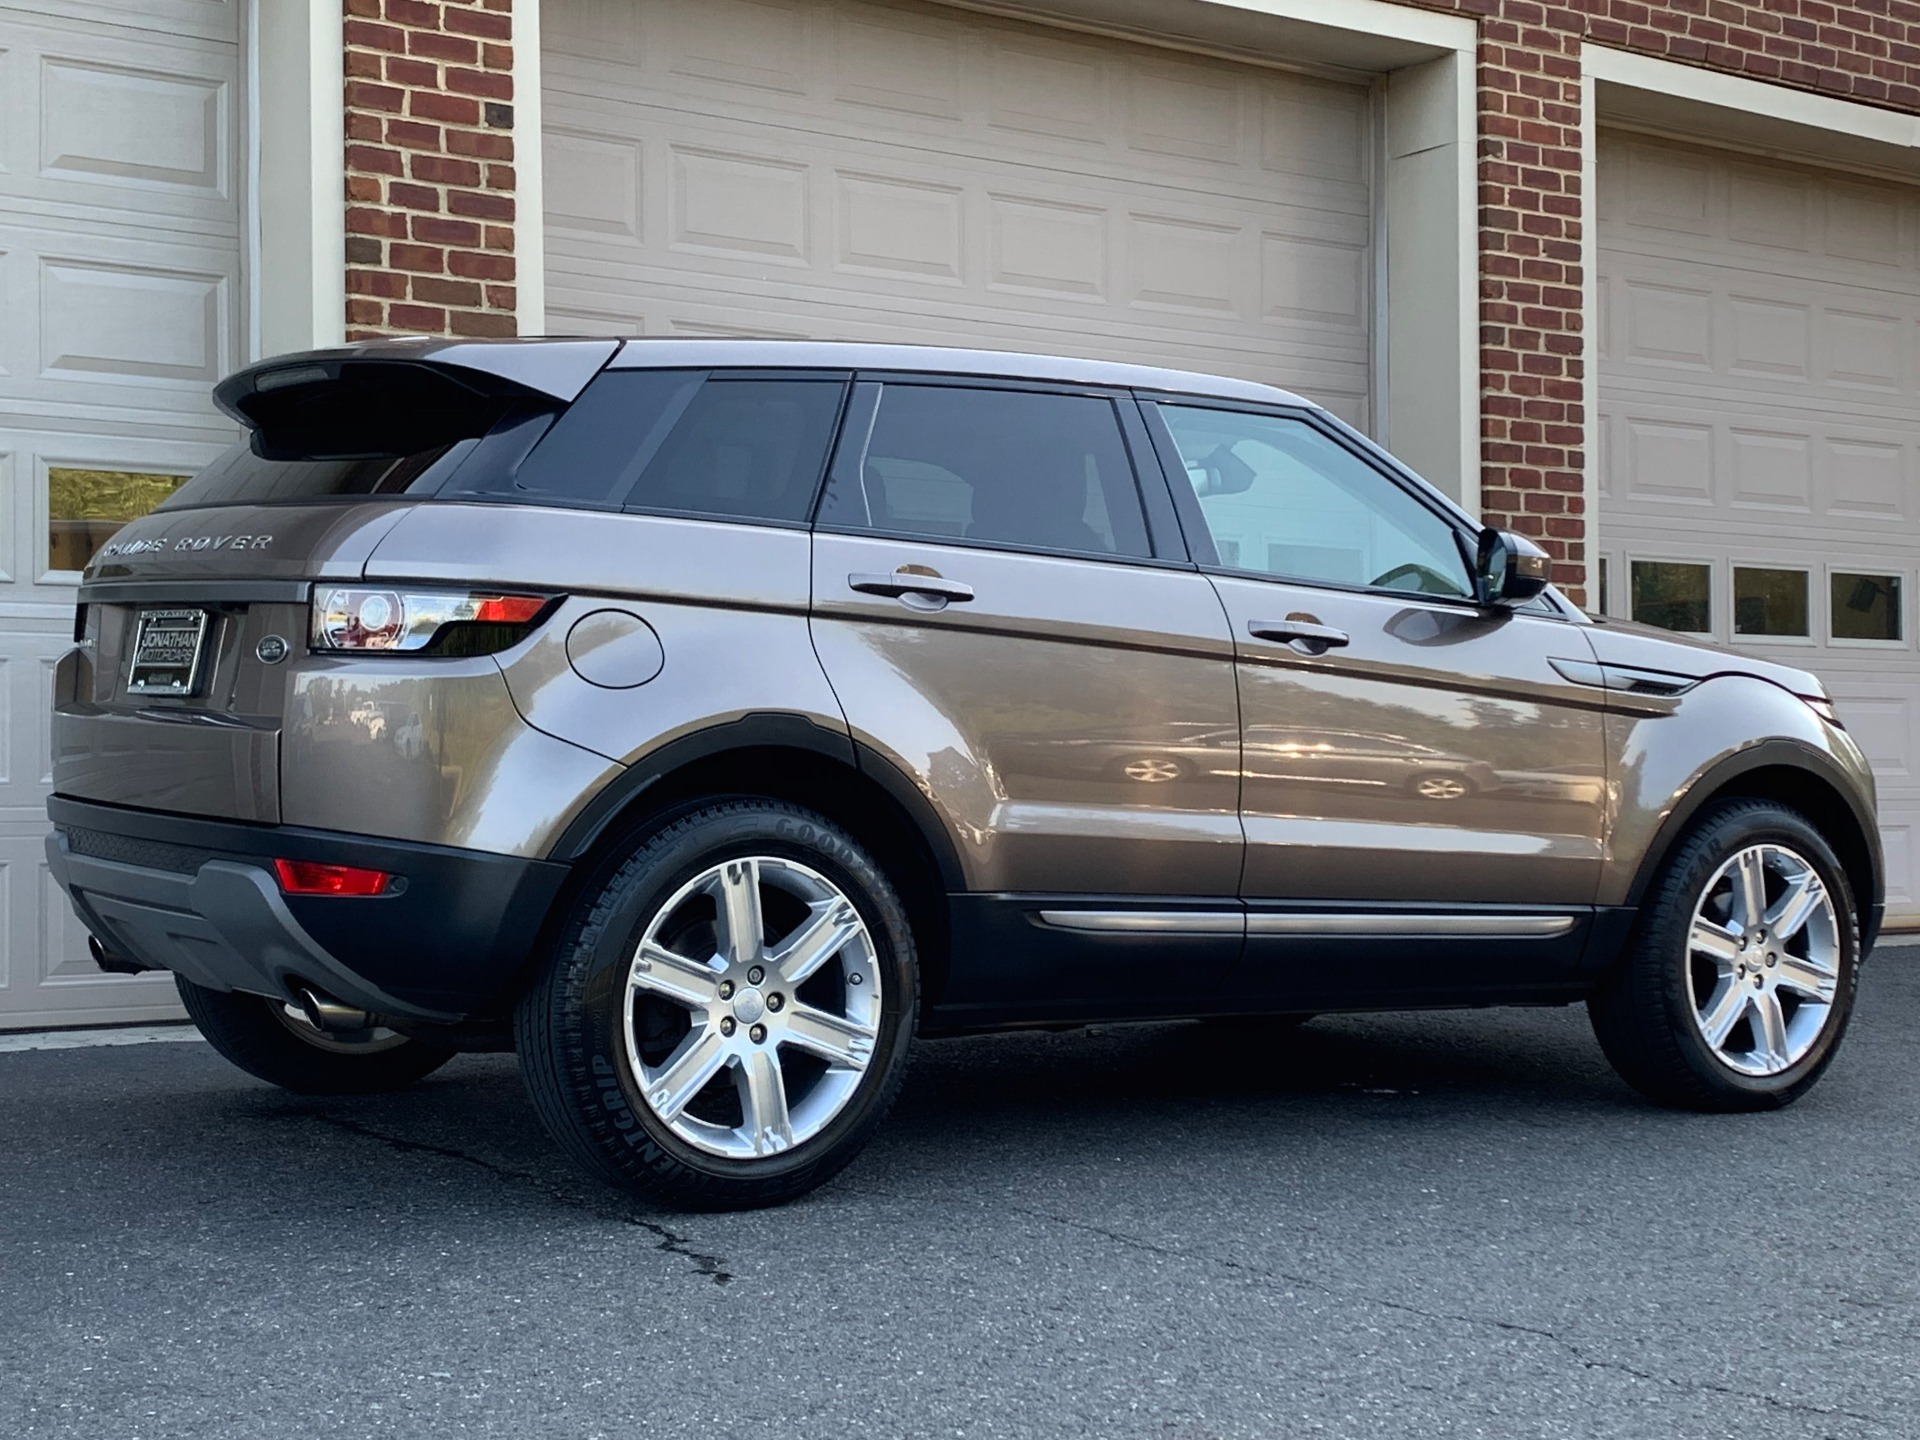 Used-2015-Land-Rover-Range-Rover-Evoque-Pure-Plus